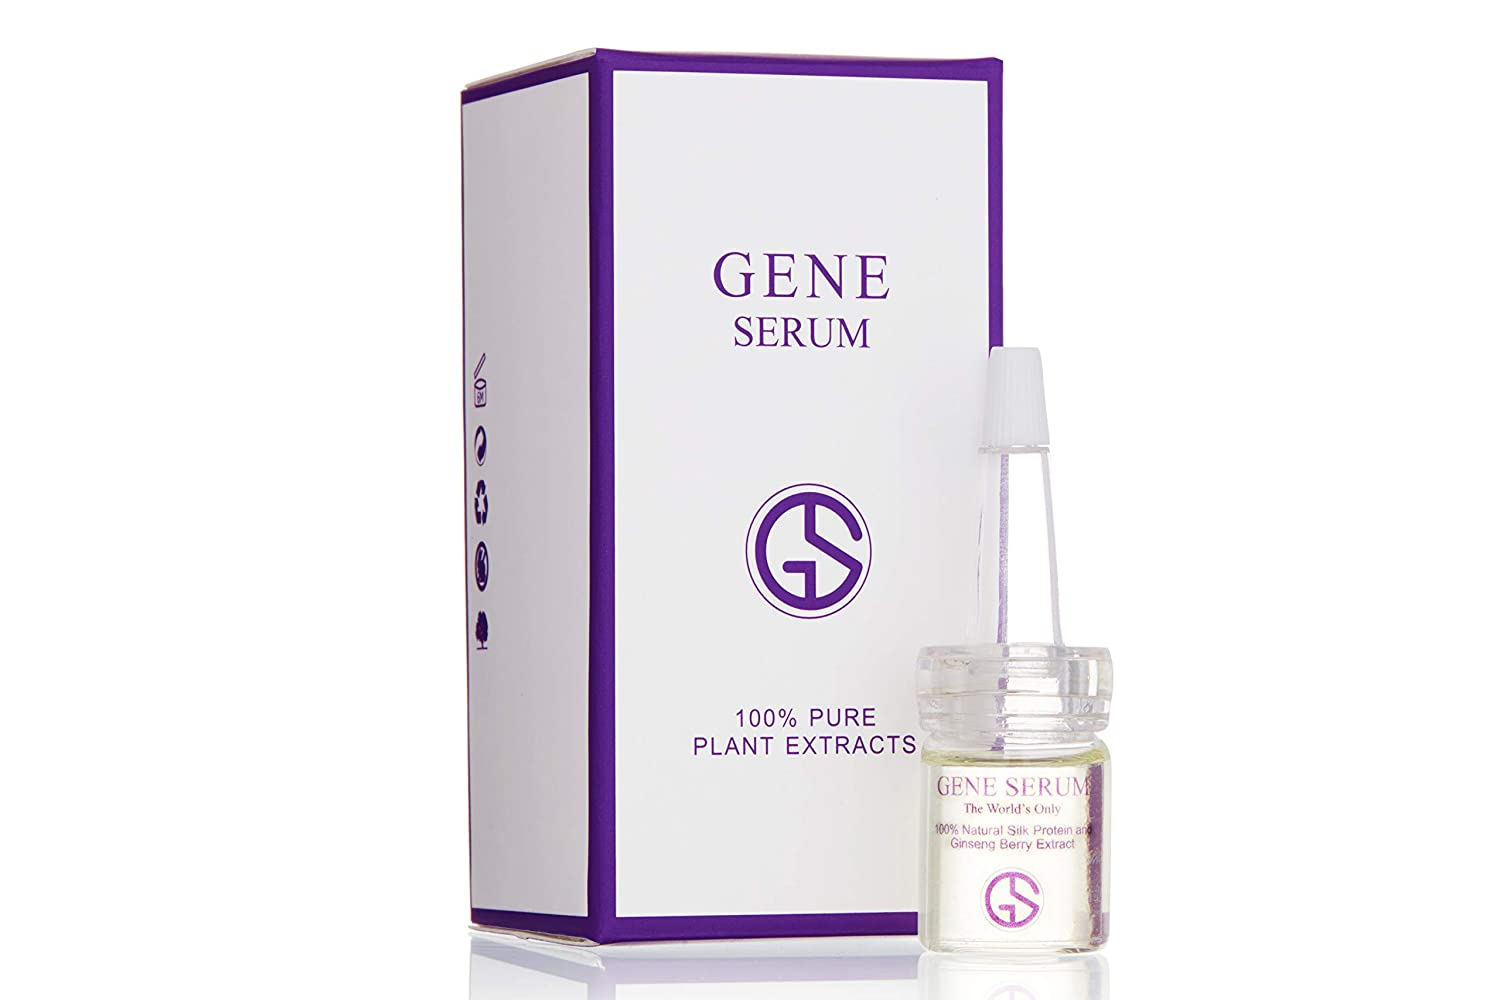 GeneSerum Facial Moisturizer and Age-Defying Formula to Help Restore your Skin - Used with 100 Percent Natural Silk Protein and Ginseng Berries Extract